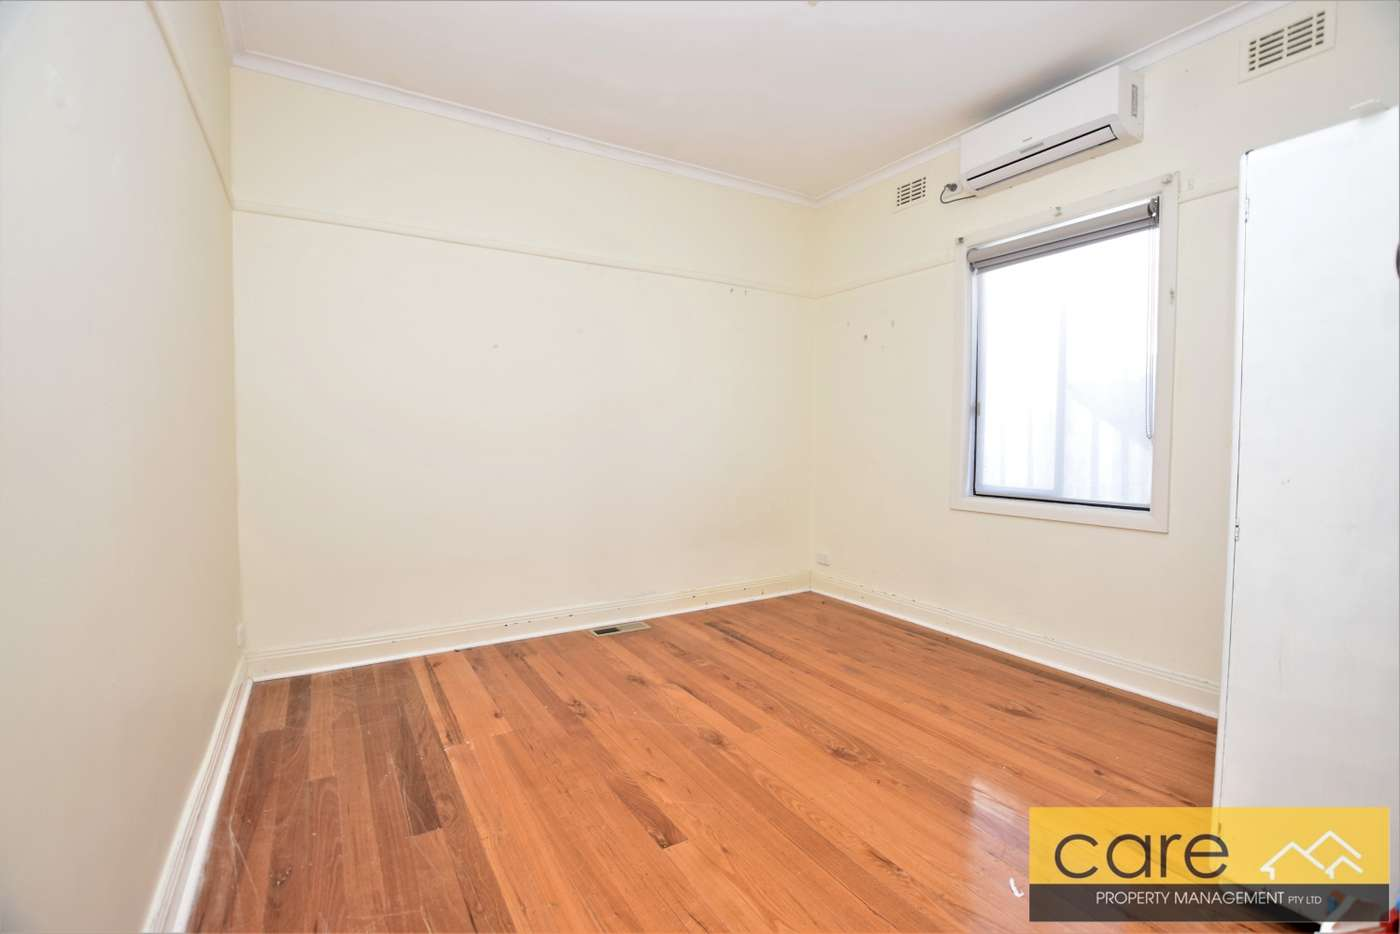 Seventh view of Homely house listing, 51 Ross Street, Huntingdale VIC 3166